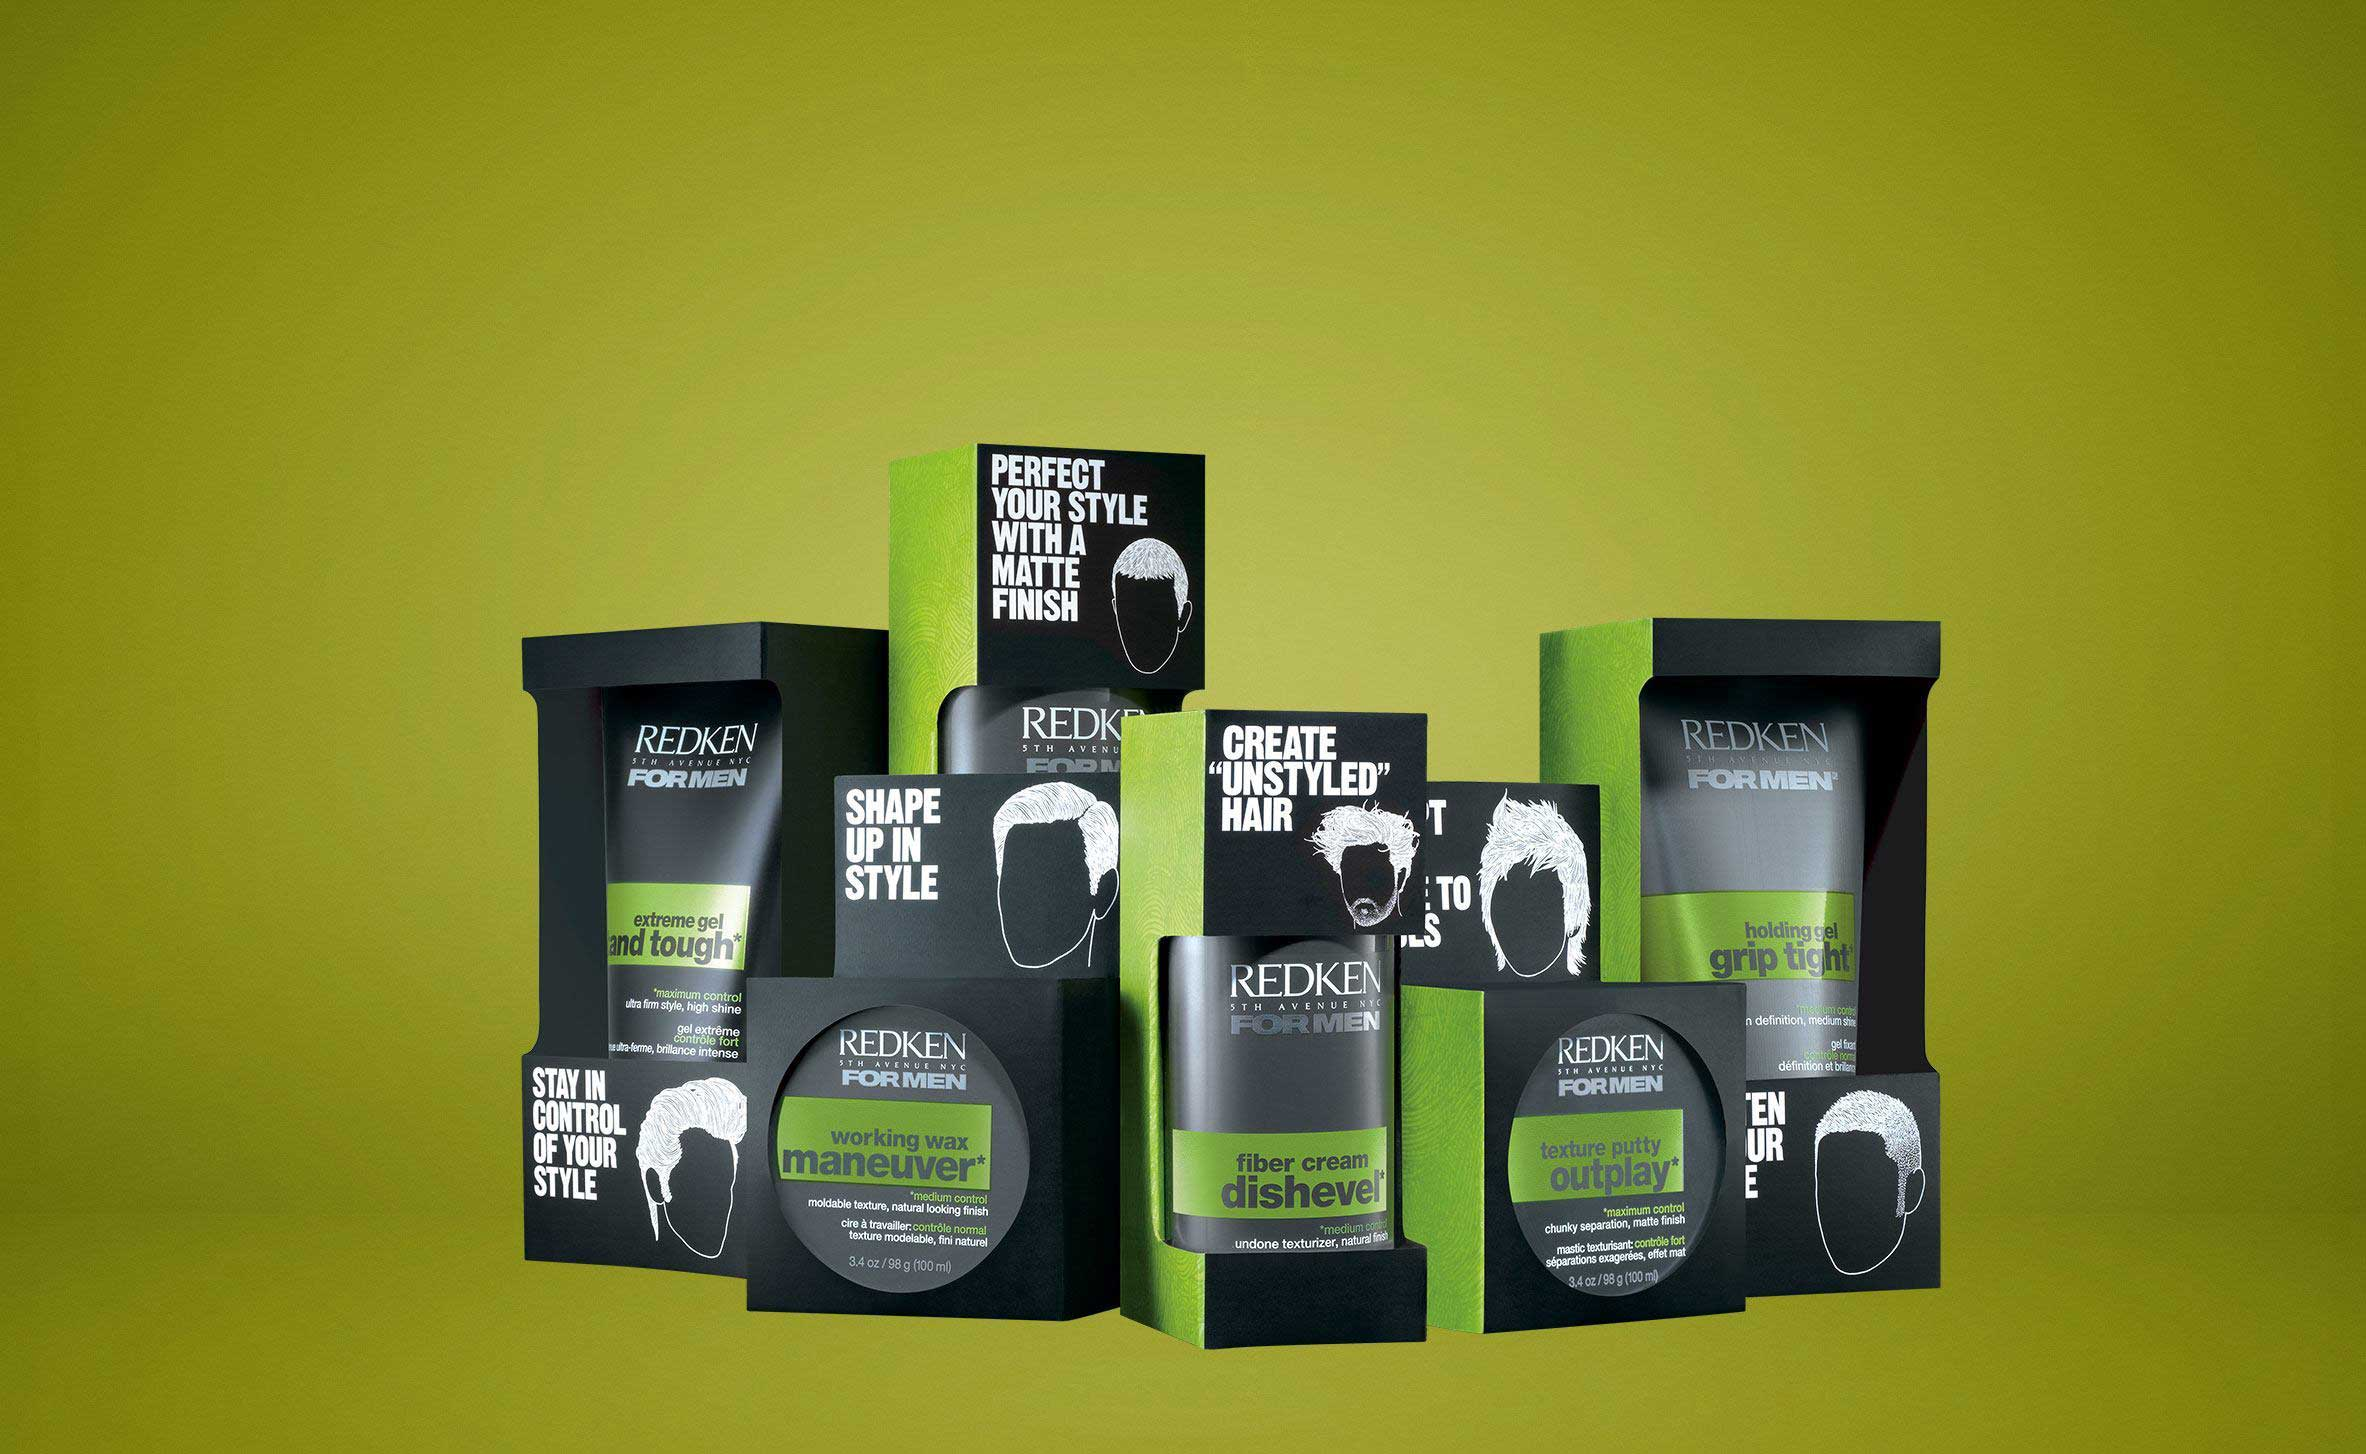 Redken Professional Hair Styling Products For Men